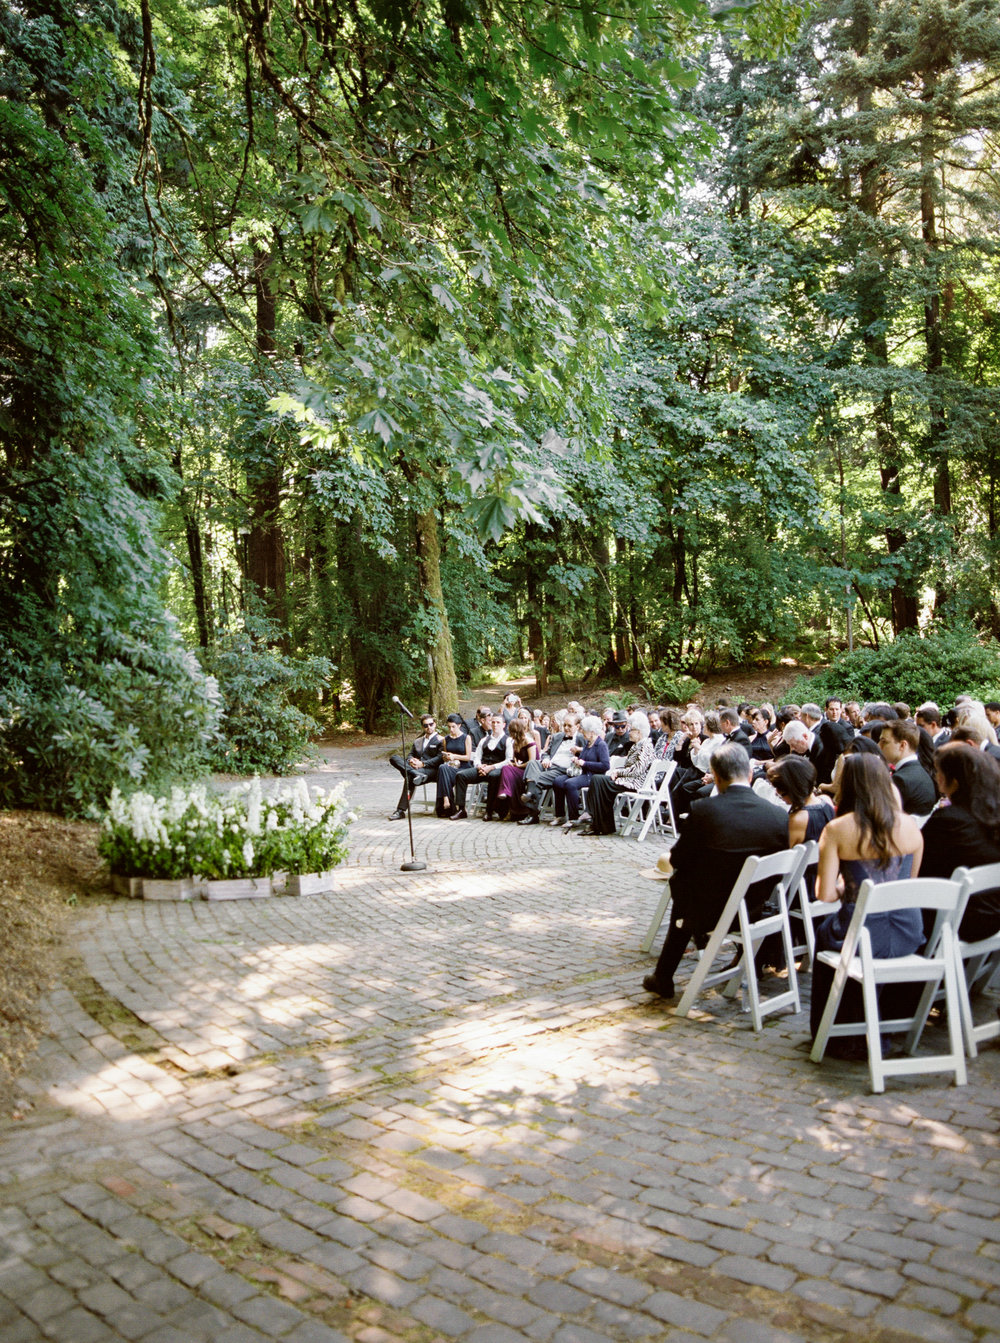 117OutliveCreative_Travel_Photographer_Videographer_Lewis&Clark_Oregon_Elegant_BlackTie_Destination_Wedding.jpg